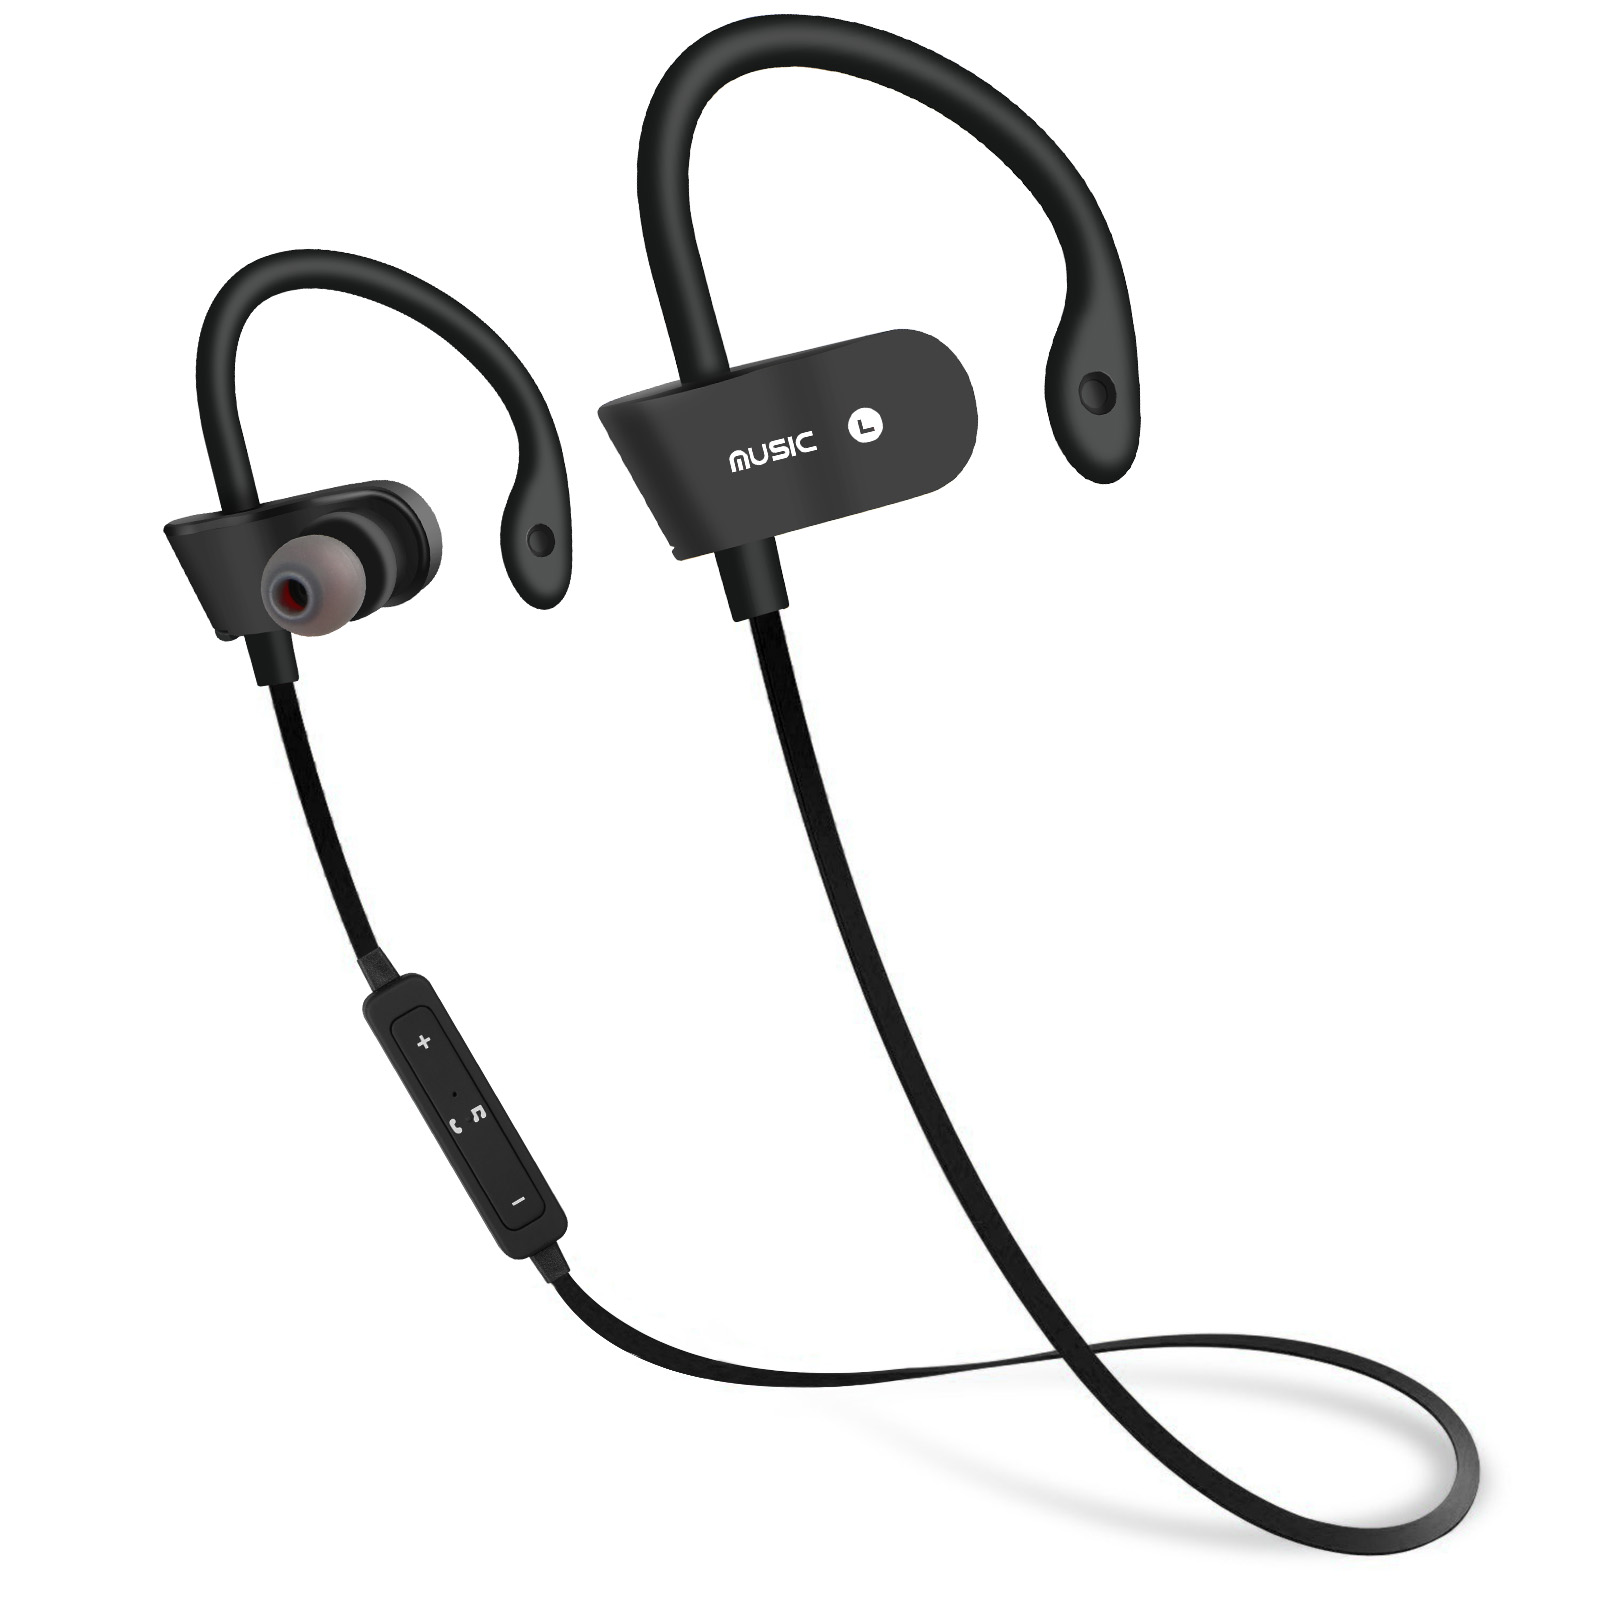 ccd30b095a8 TSV Bluetooth V4.1 Headphone Wireless Earphone Sport Running Stereo Headset  with Mic Red - Walmart.com